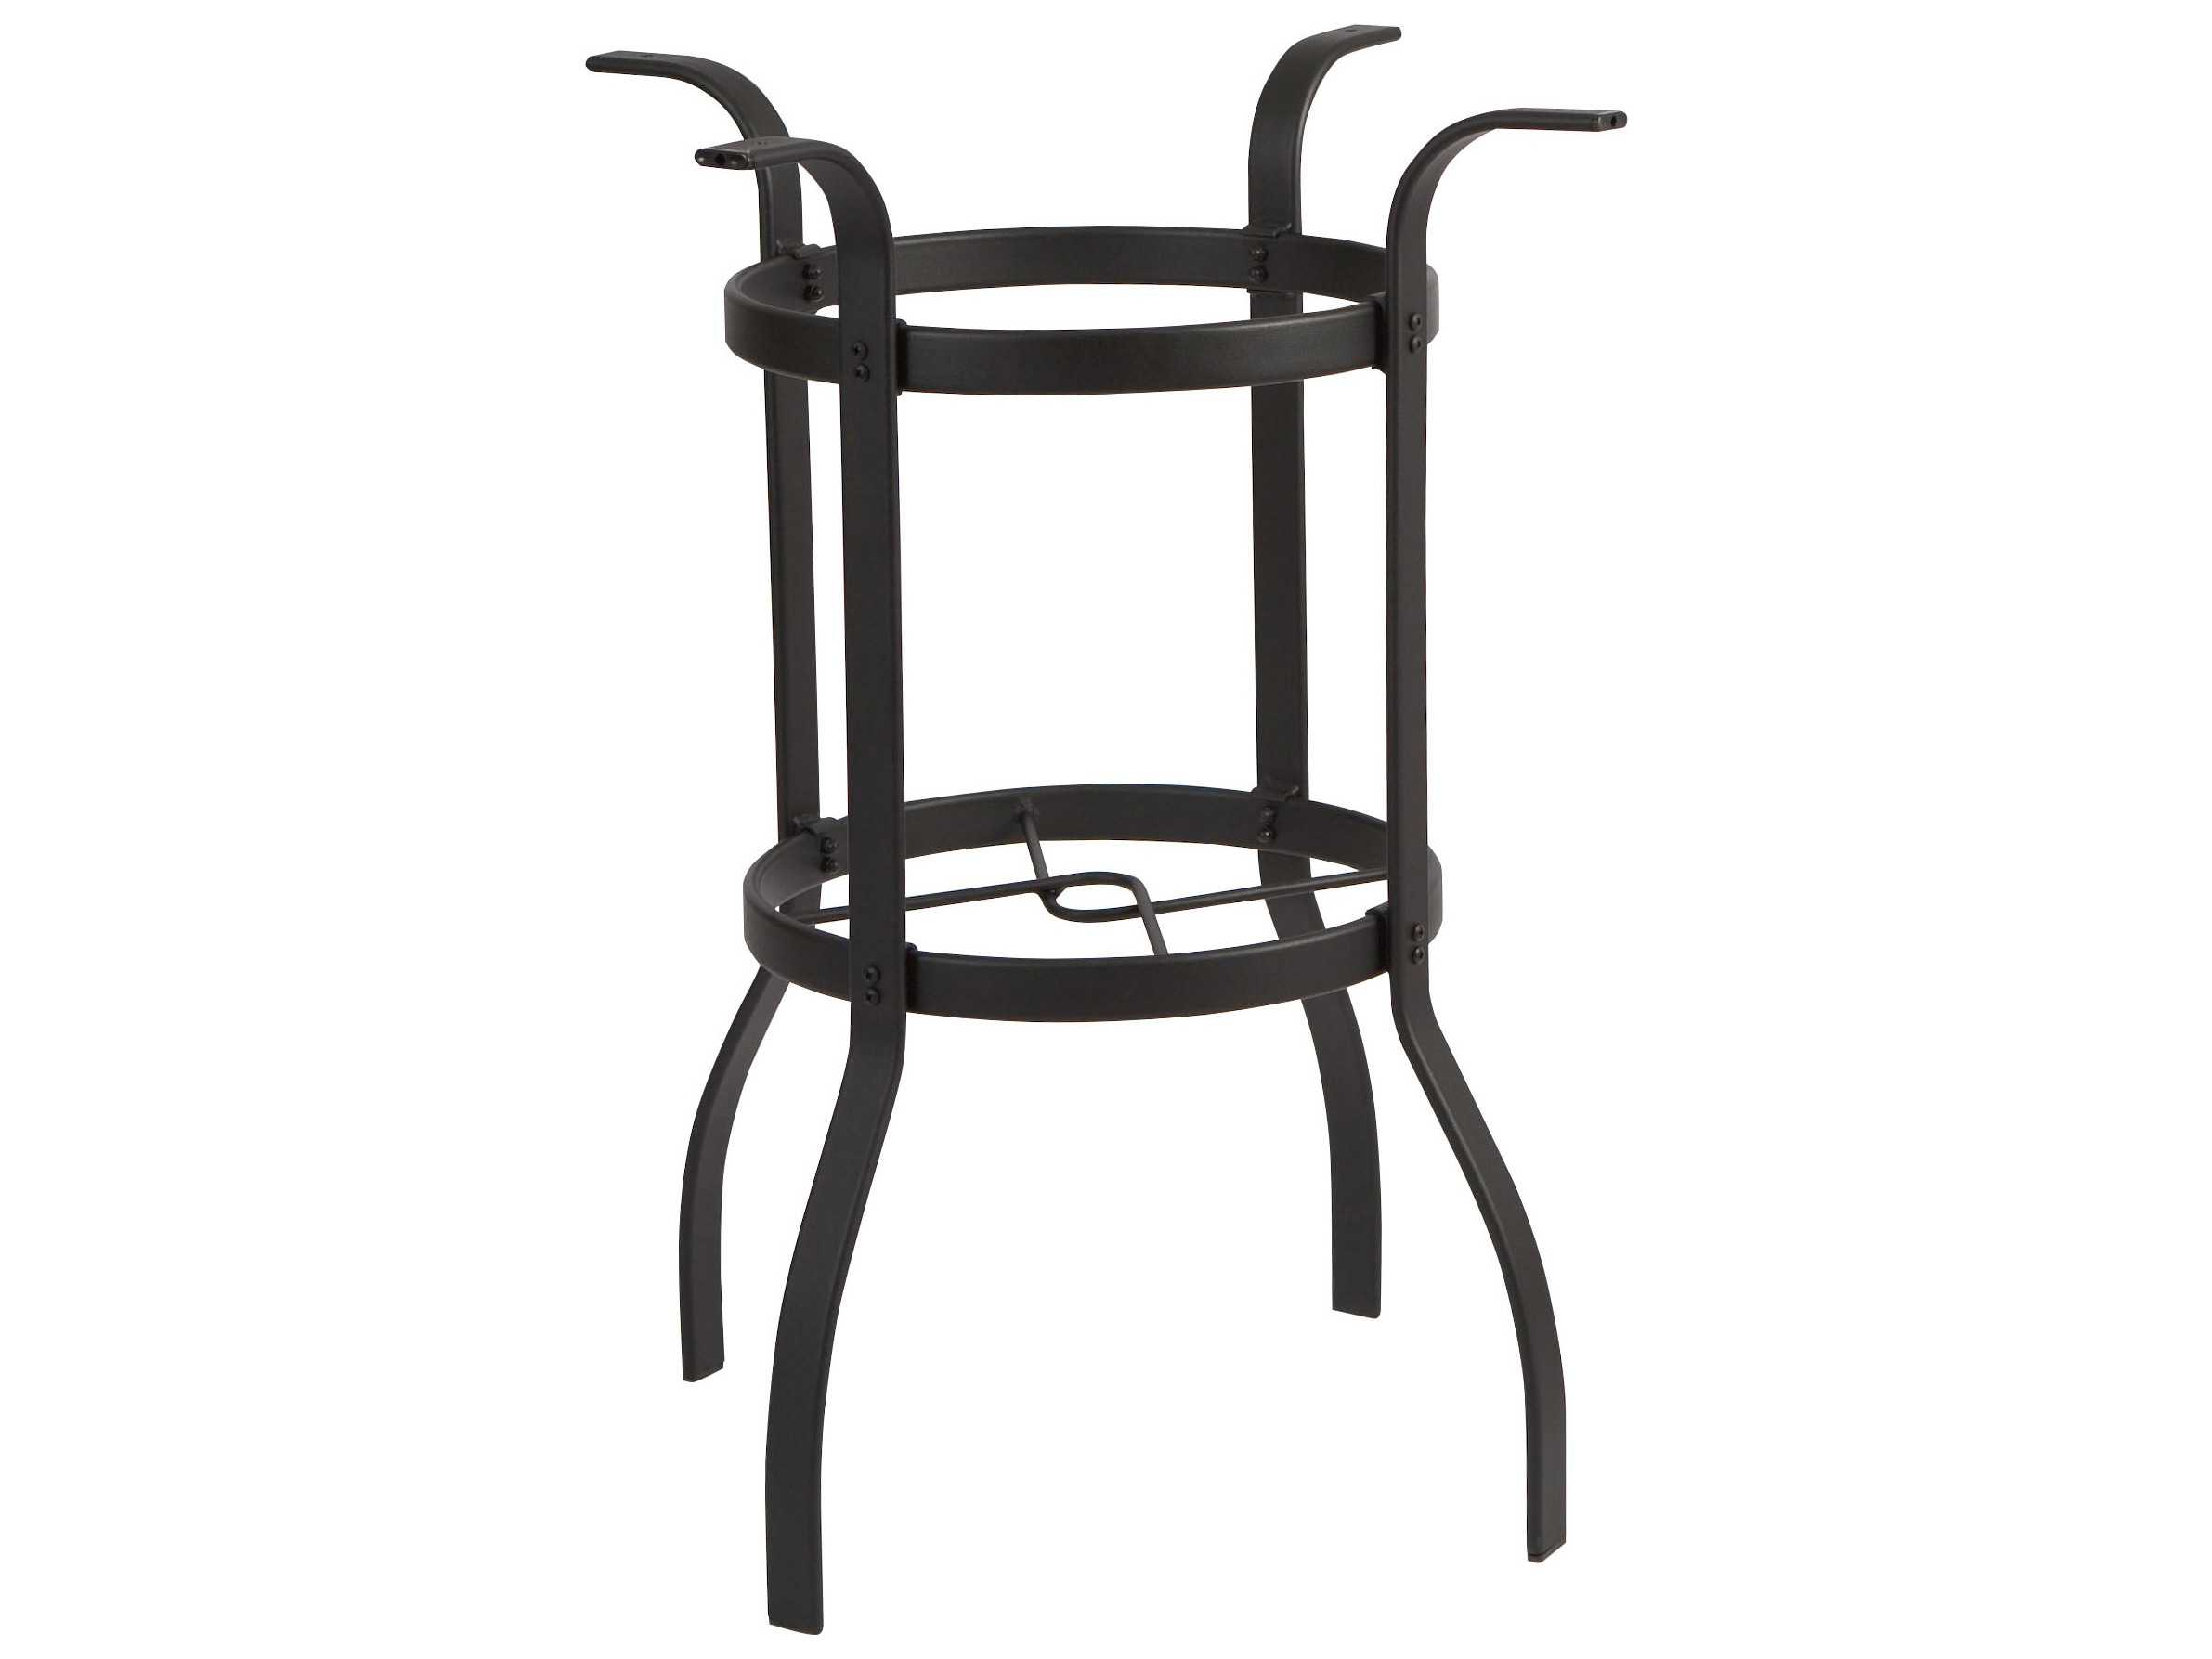 woodard deluxe bar height table base only wr82536b. Black Bedroom Furniture Sets. Home Design Ideas